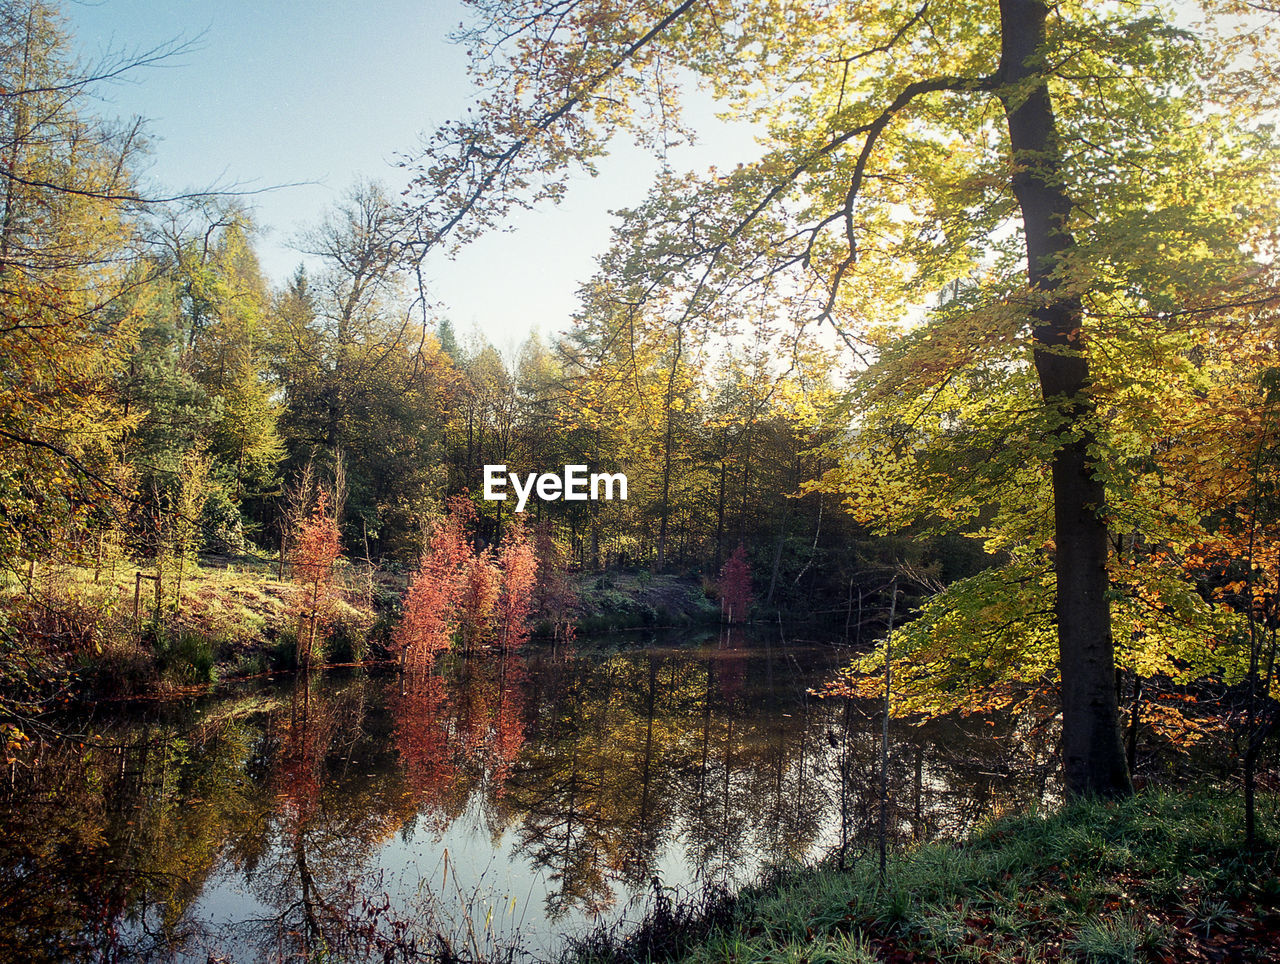 tree, plant, reflection, tranquility, beauty in nature, water, autumn, tranquil scene, lake, change, growth, scenics - nature, nature, forest, no people, sky, day, idyllic, non-urban scene, outdoors